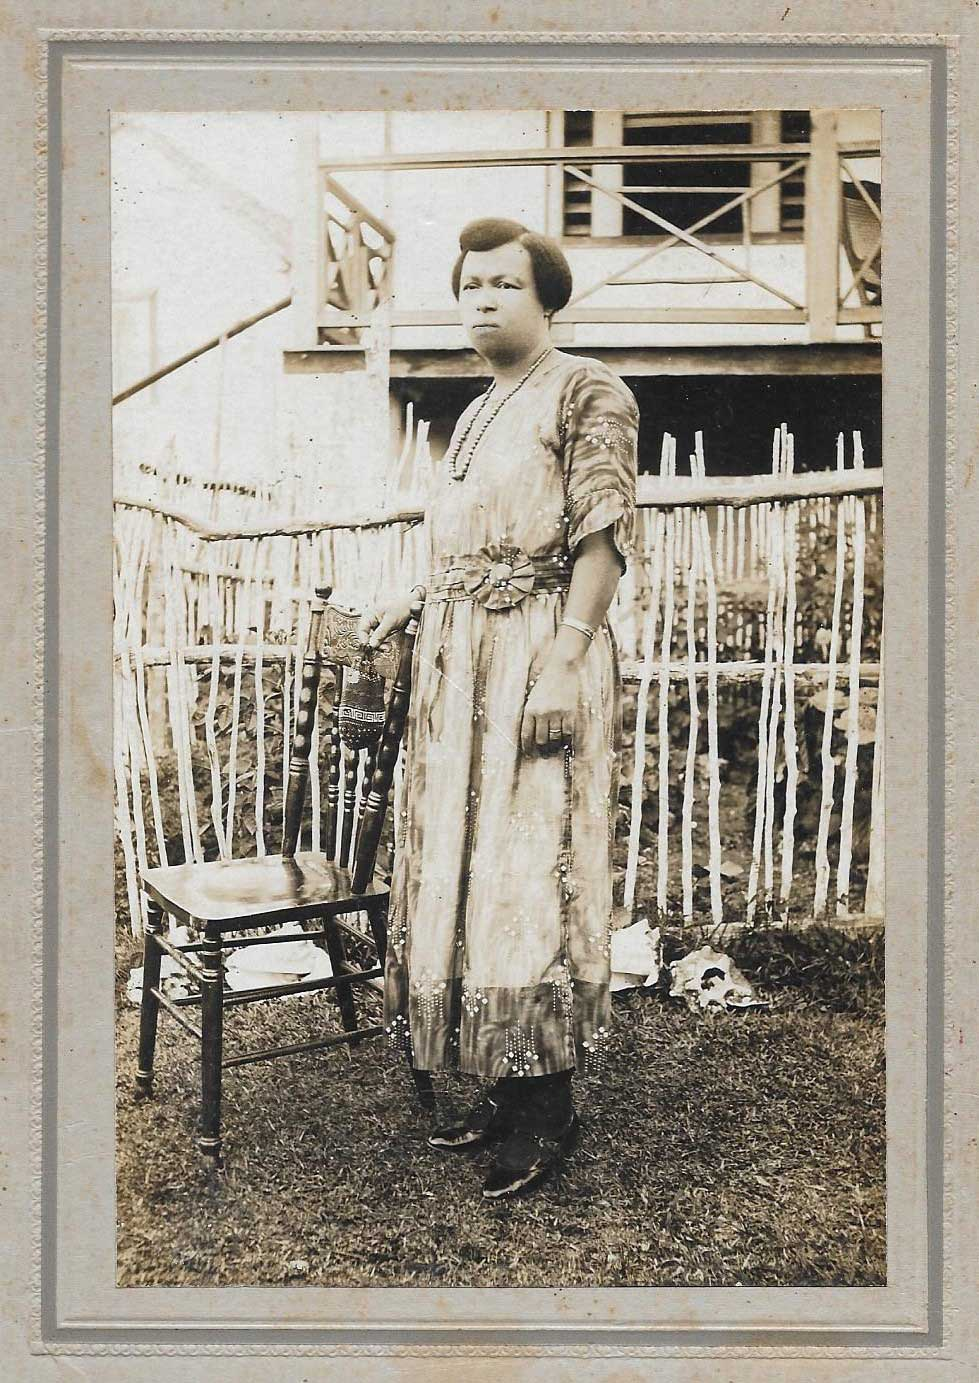 Miss Chrishy dressed up in her usual finery, standing in front of the home at Orange Hill, St Ann parish where I spent my early years